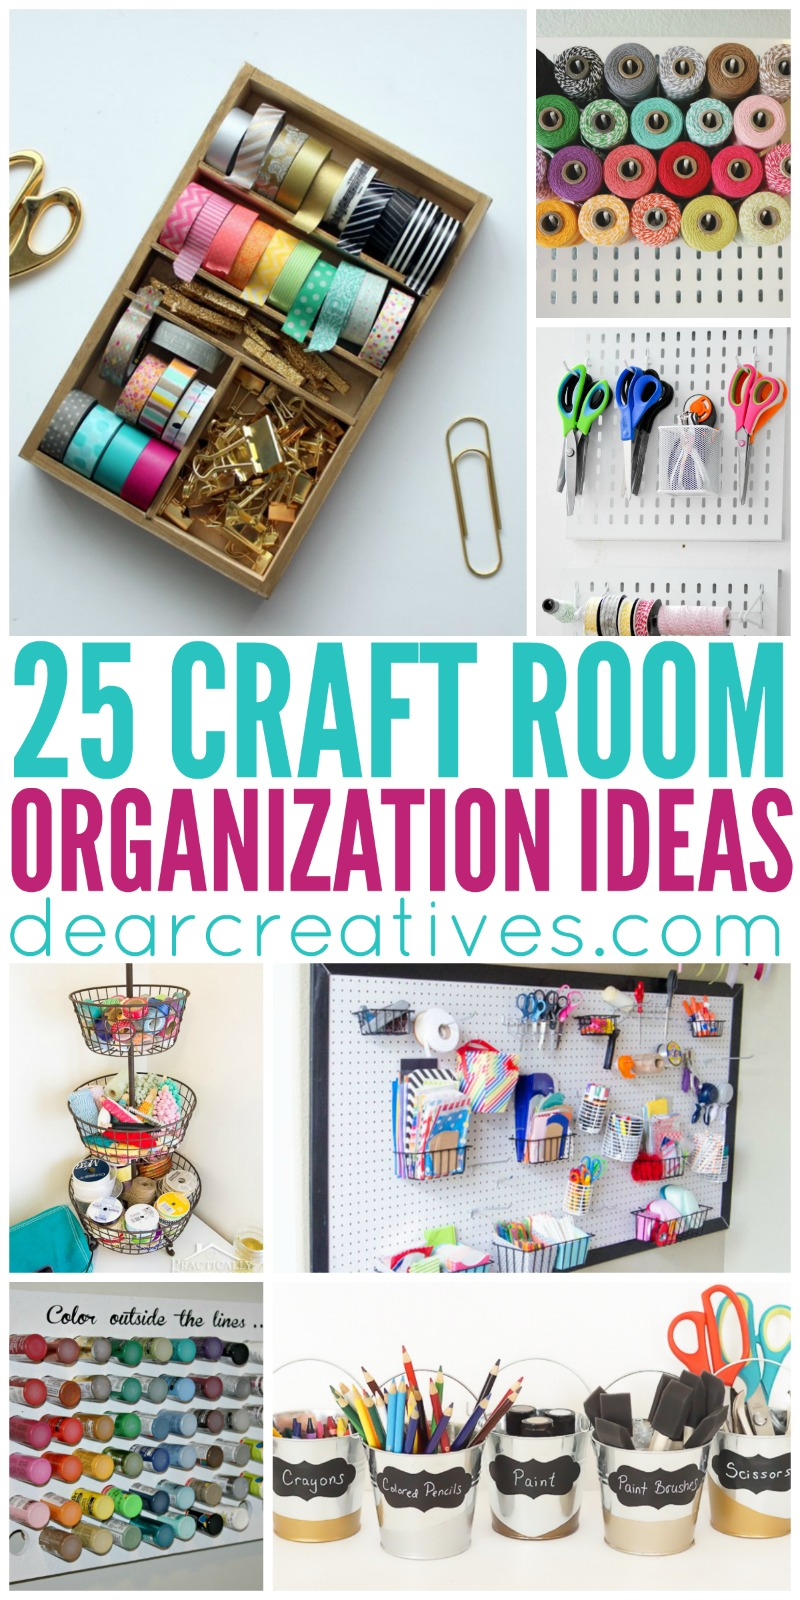 25+ Craft Room Organization Ideas